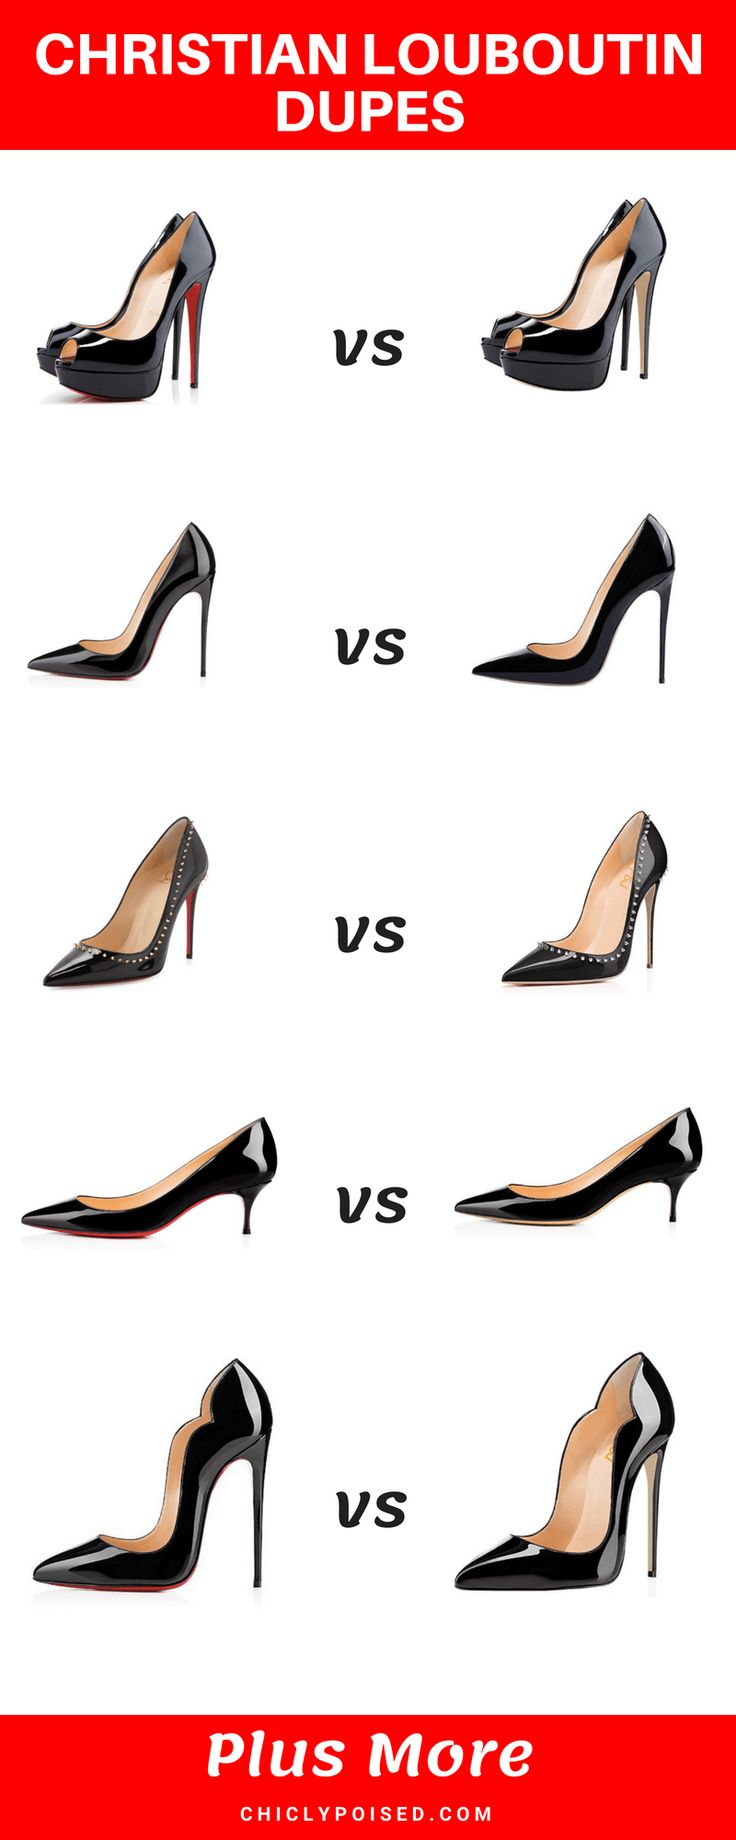 10 Best Cheap Christian Louboutin Heels Dupes Too Good To Pass Up